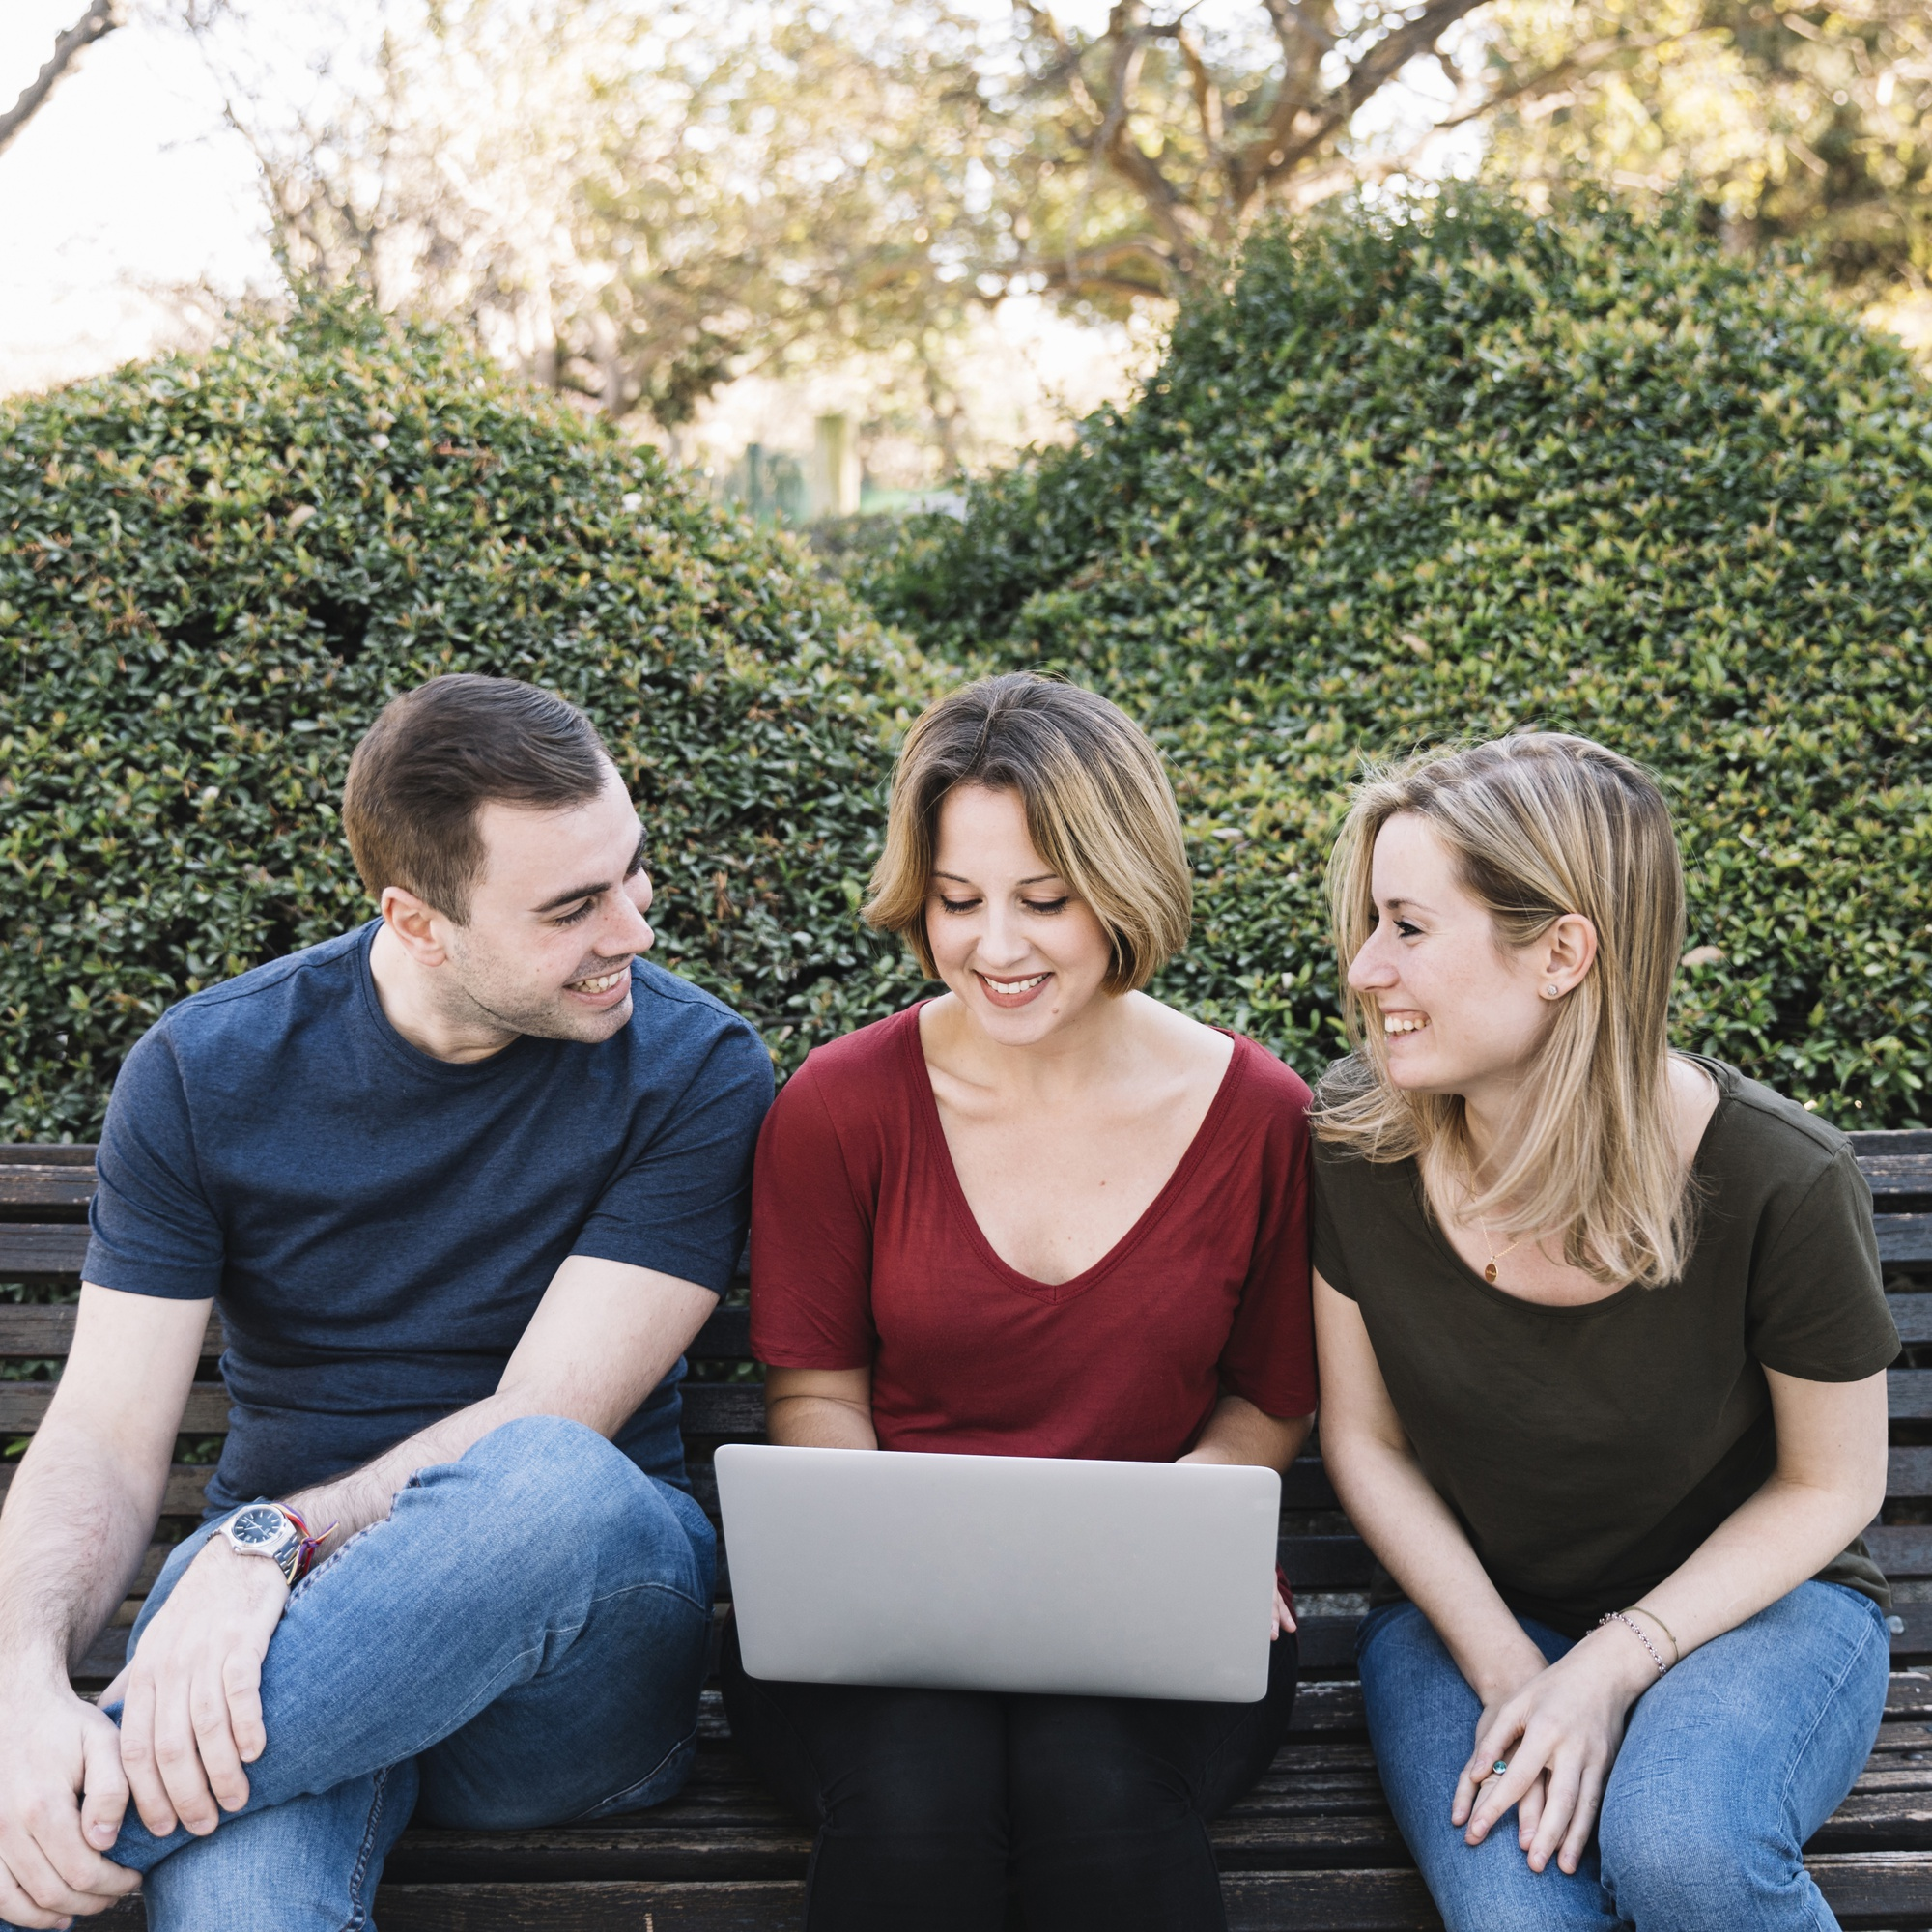 Cheerful friends using laptop in park